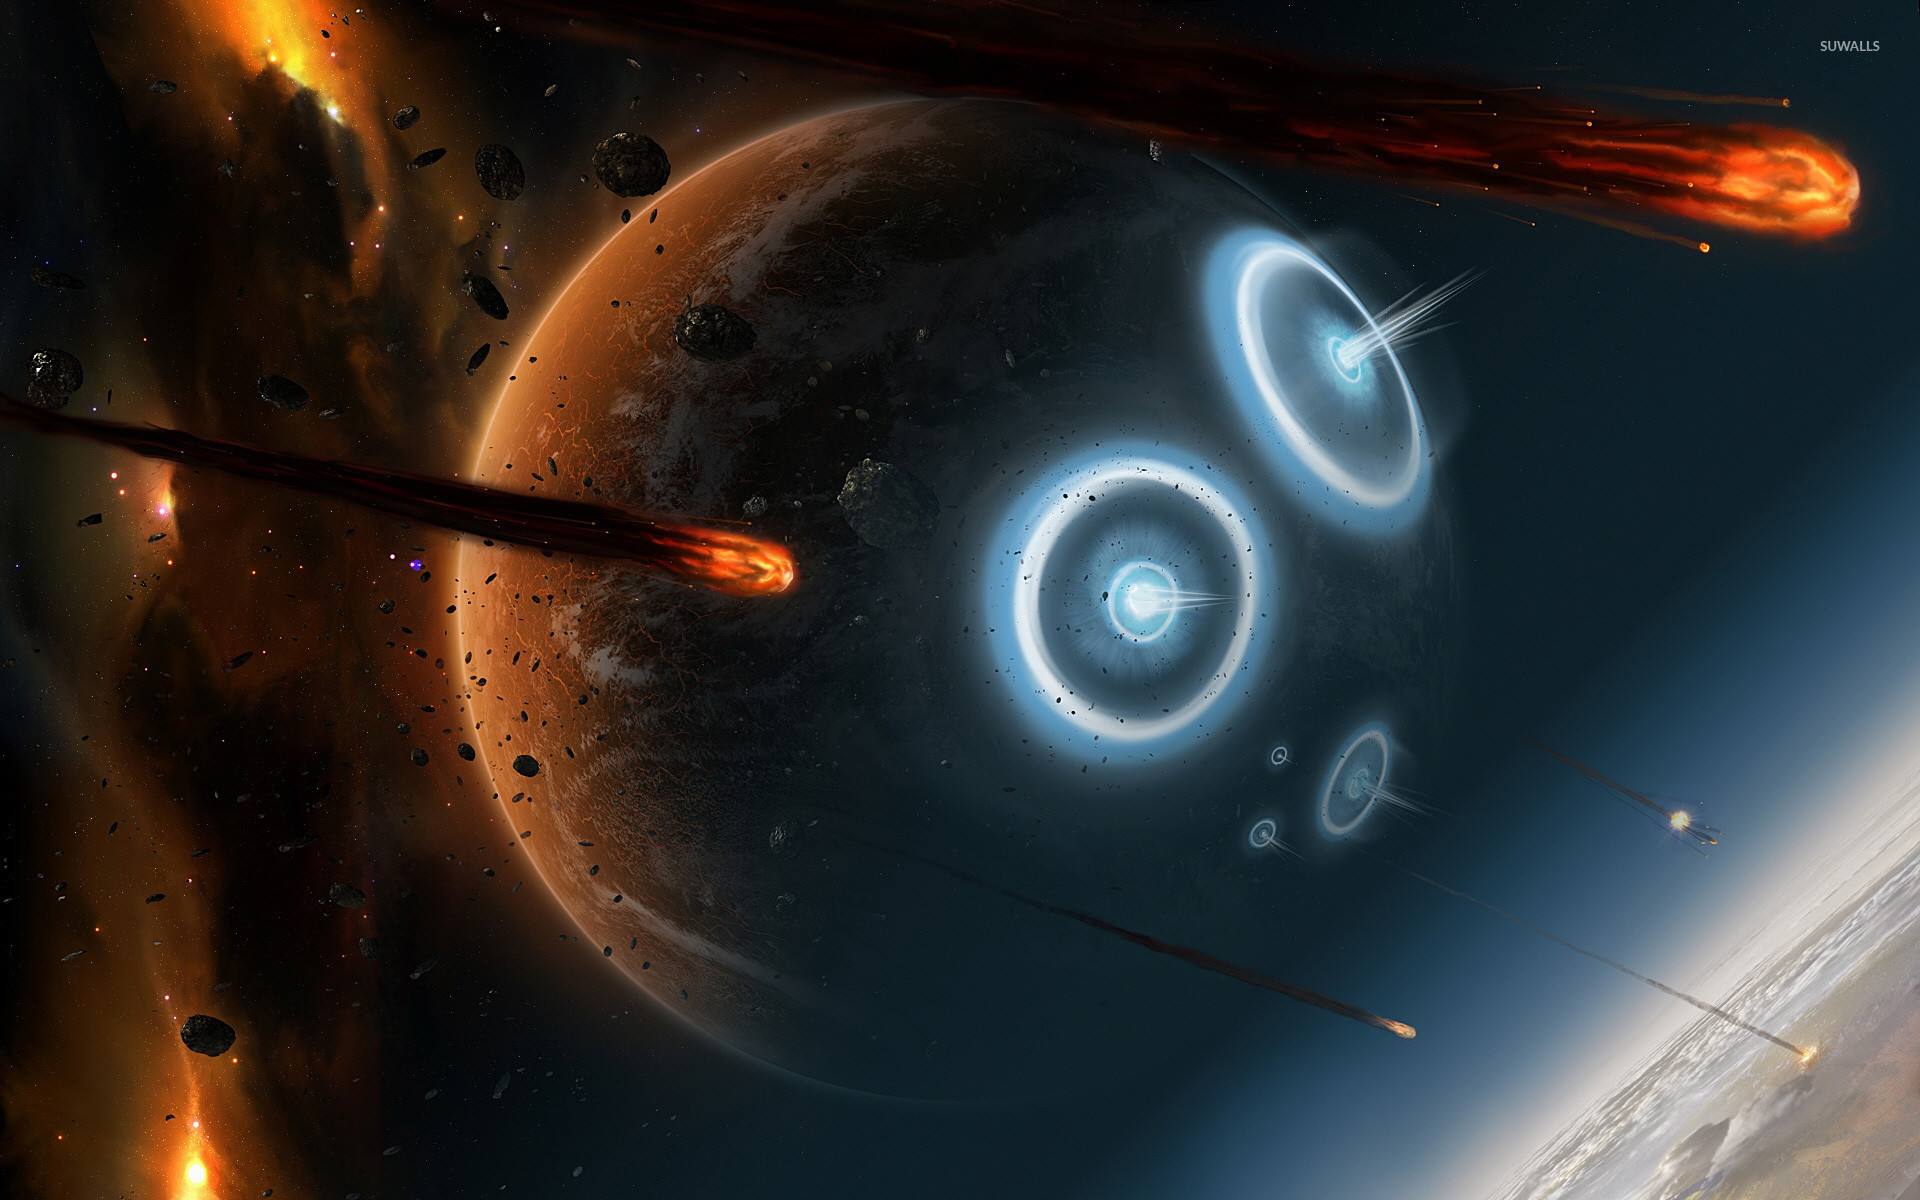 Planets hit by asteroids wallpaper jpg